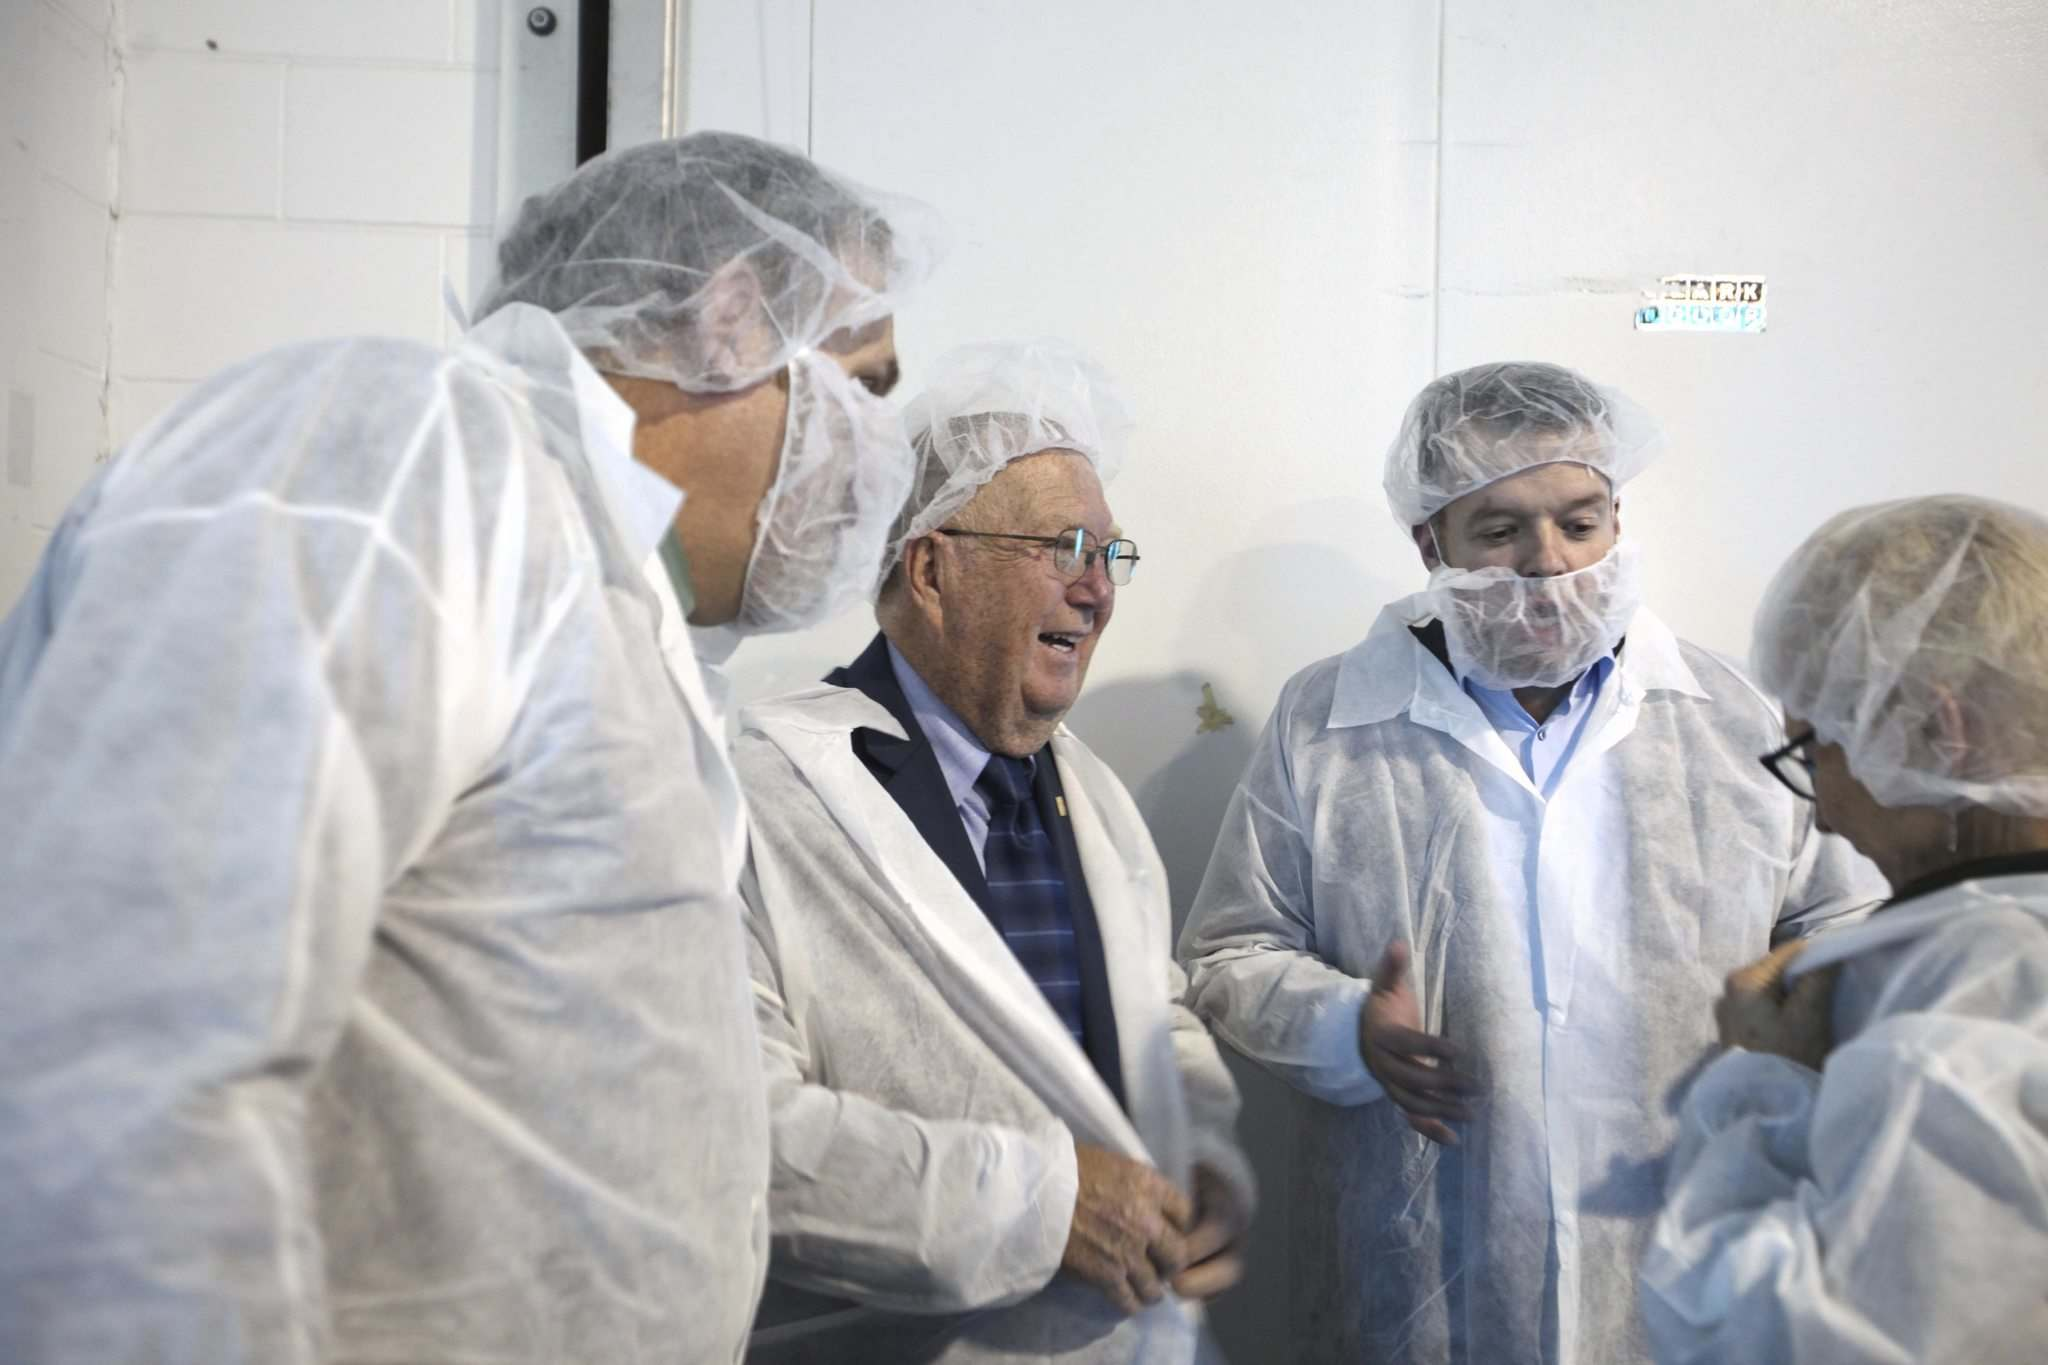 <p>Manitoba Agriculture Minister Ralph Eichler, left and Vitalus Nutrition Inc. president and CEO Philip Vanderpol, centre put on protective clothing for a plant tour of the new $100-million dairy processing plant in Winnipeg Wednesday.</p>